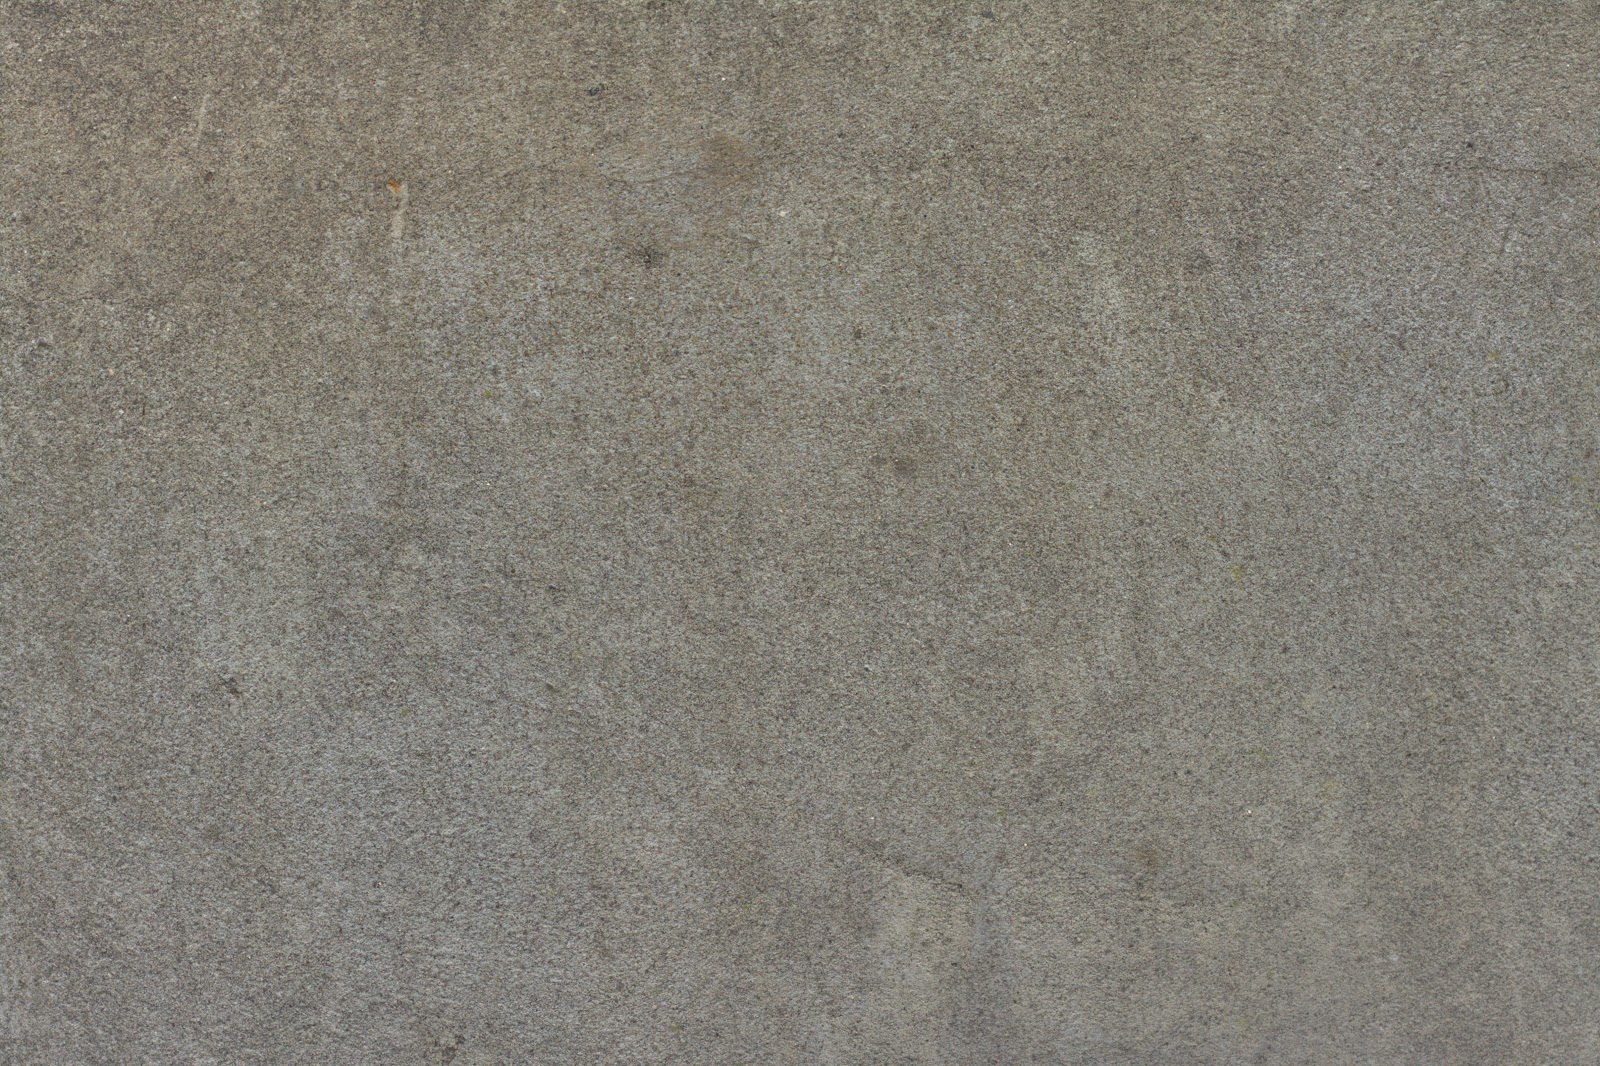 . High Resolution Seamless Textures  Concrete